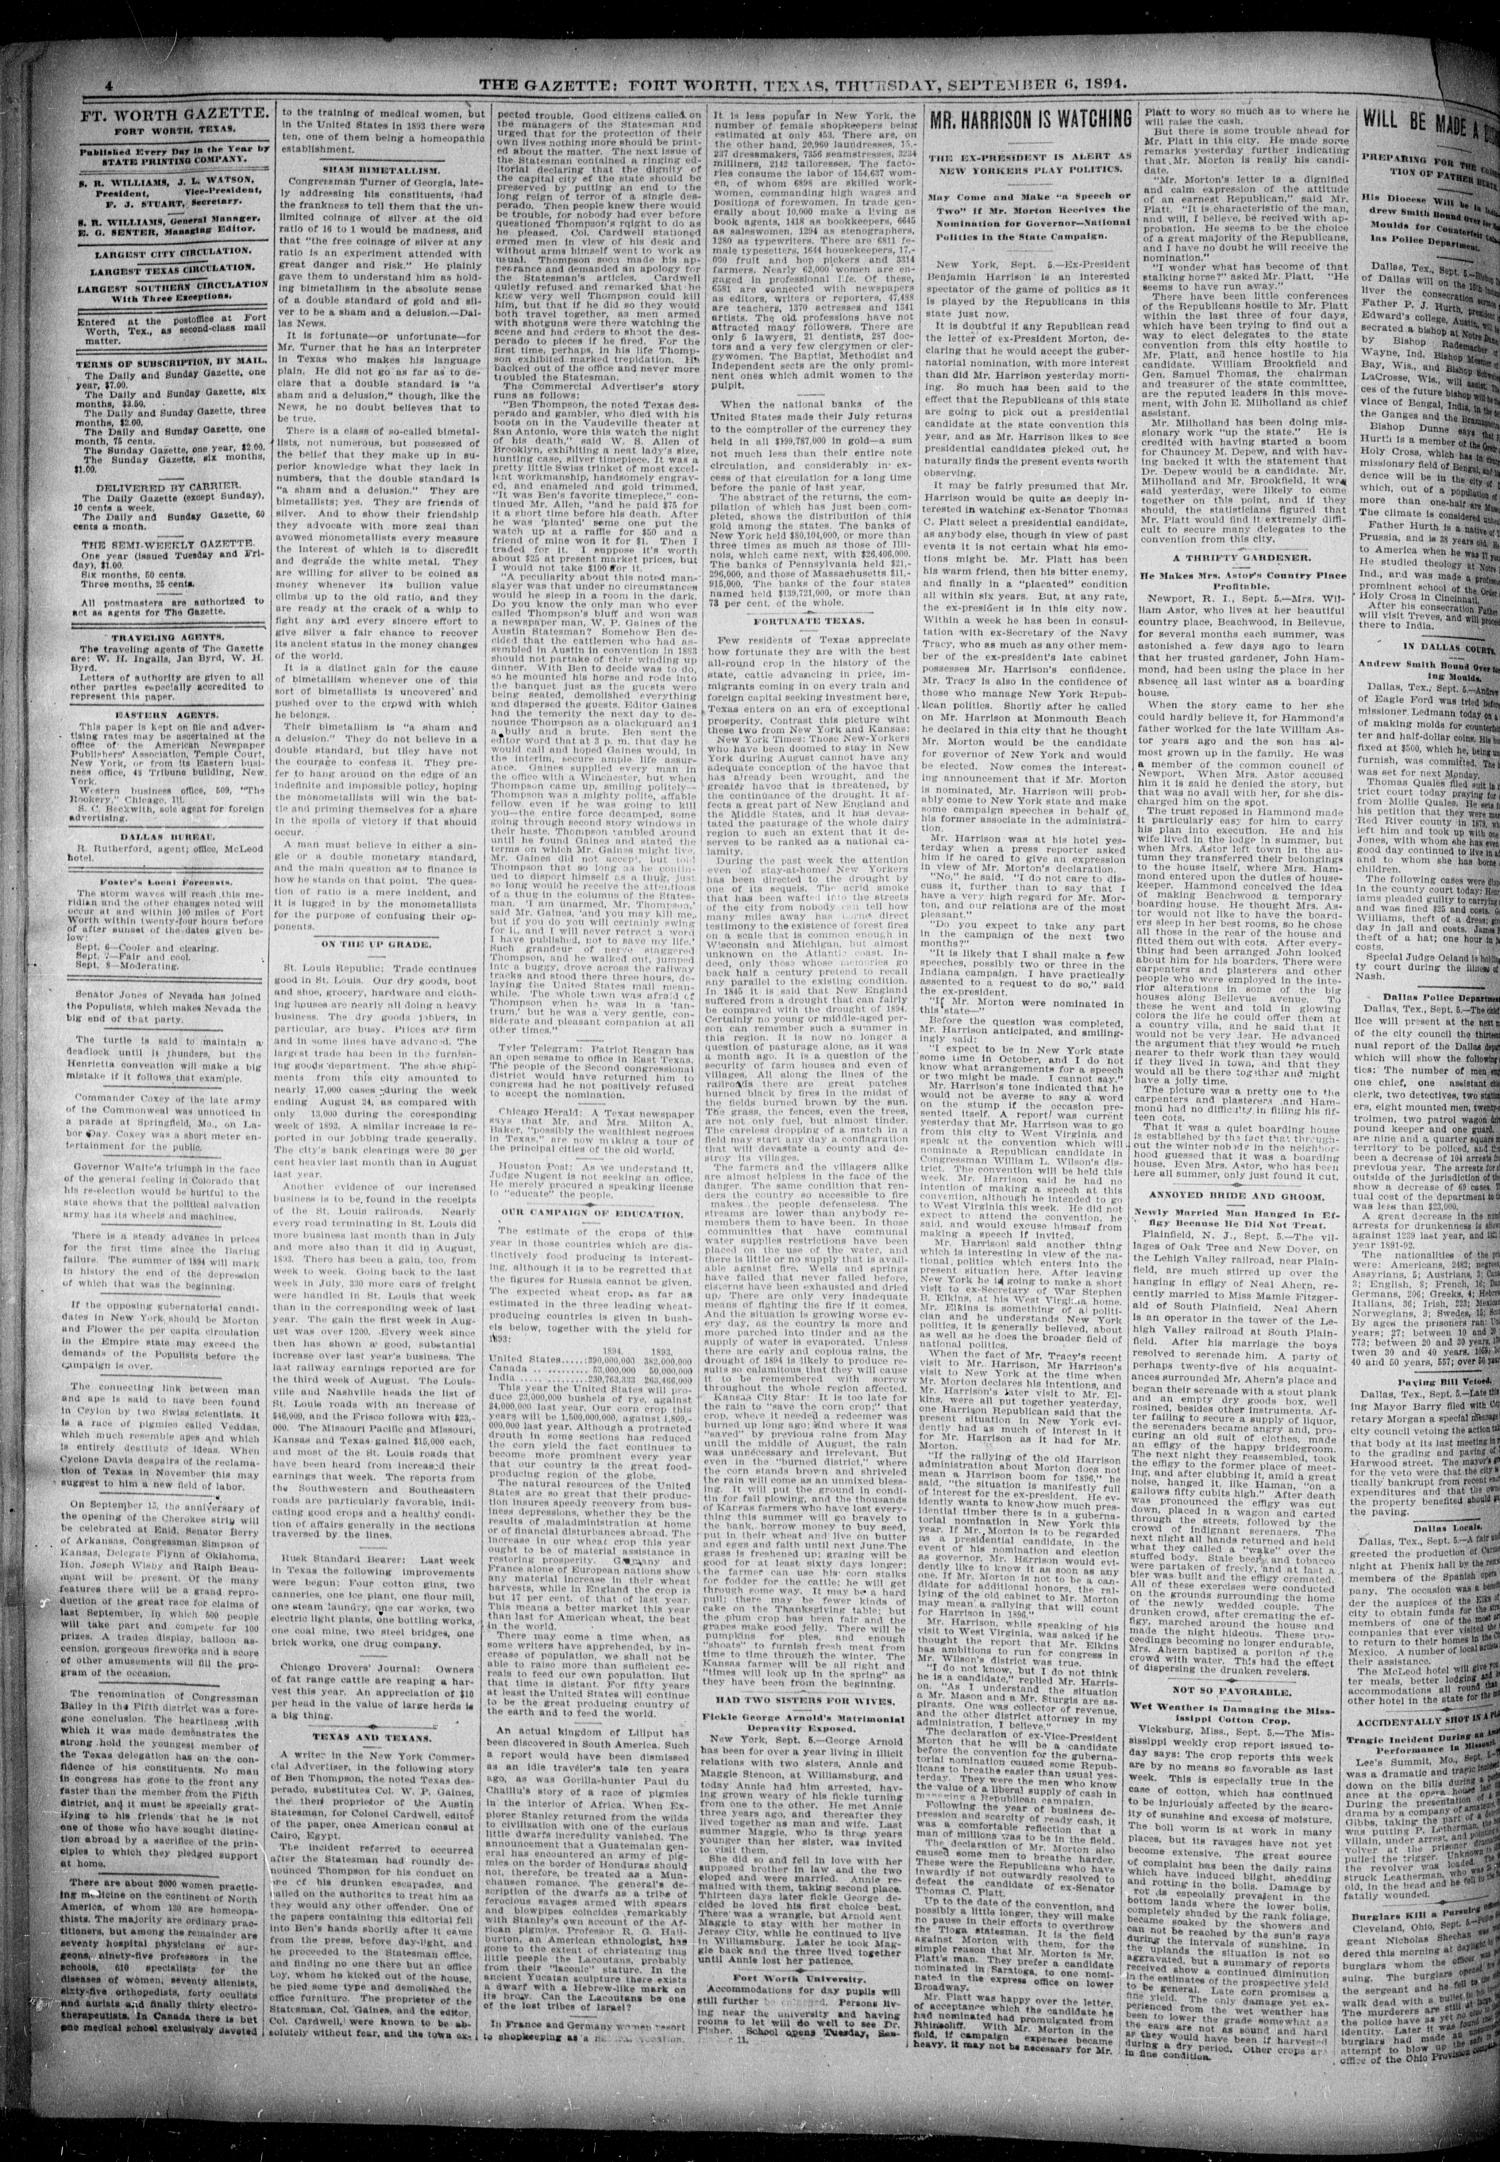 Fort Worth Gazette. (Fort Worth, Tex.), Vol. 18, No. 287, Ed. 1, Thursday, September 6, 1894                                                                                                      [Sequence #]: 4 of 8